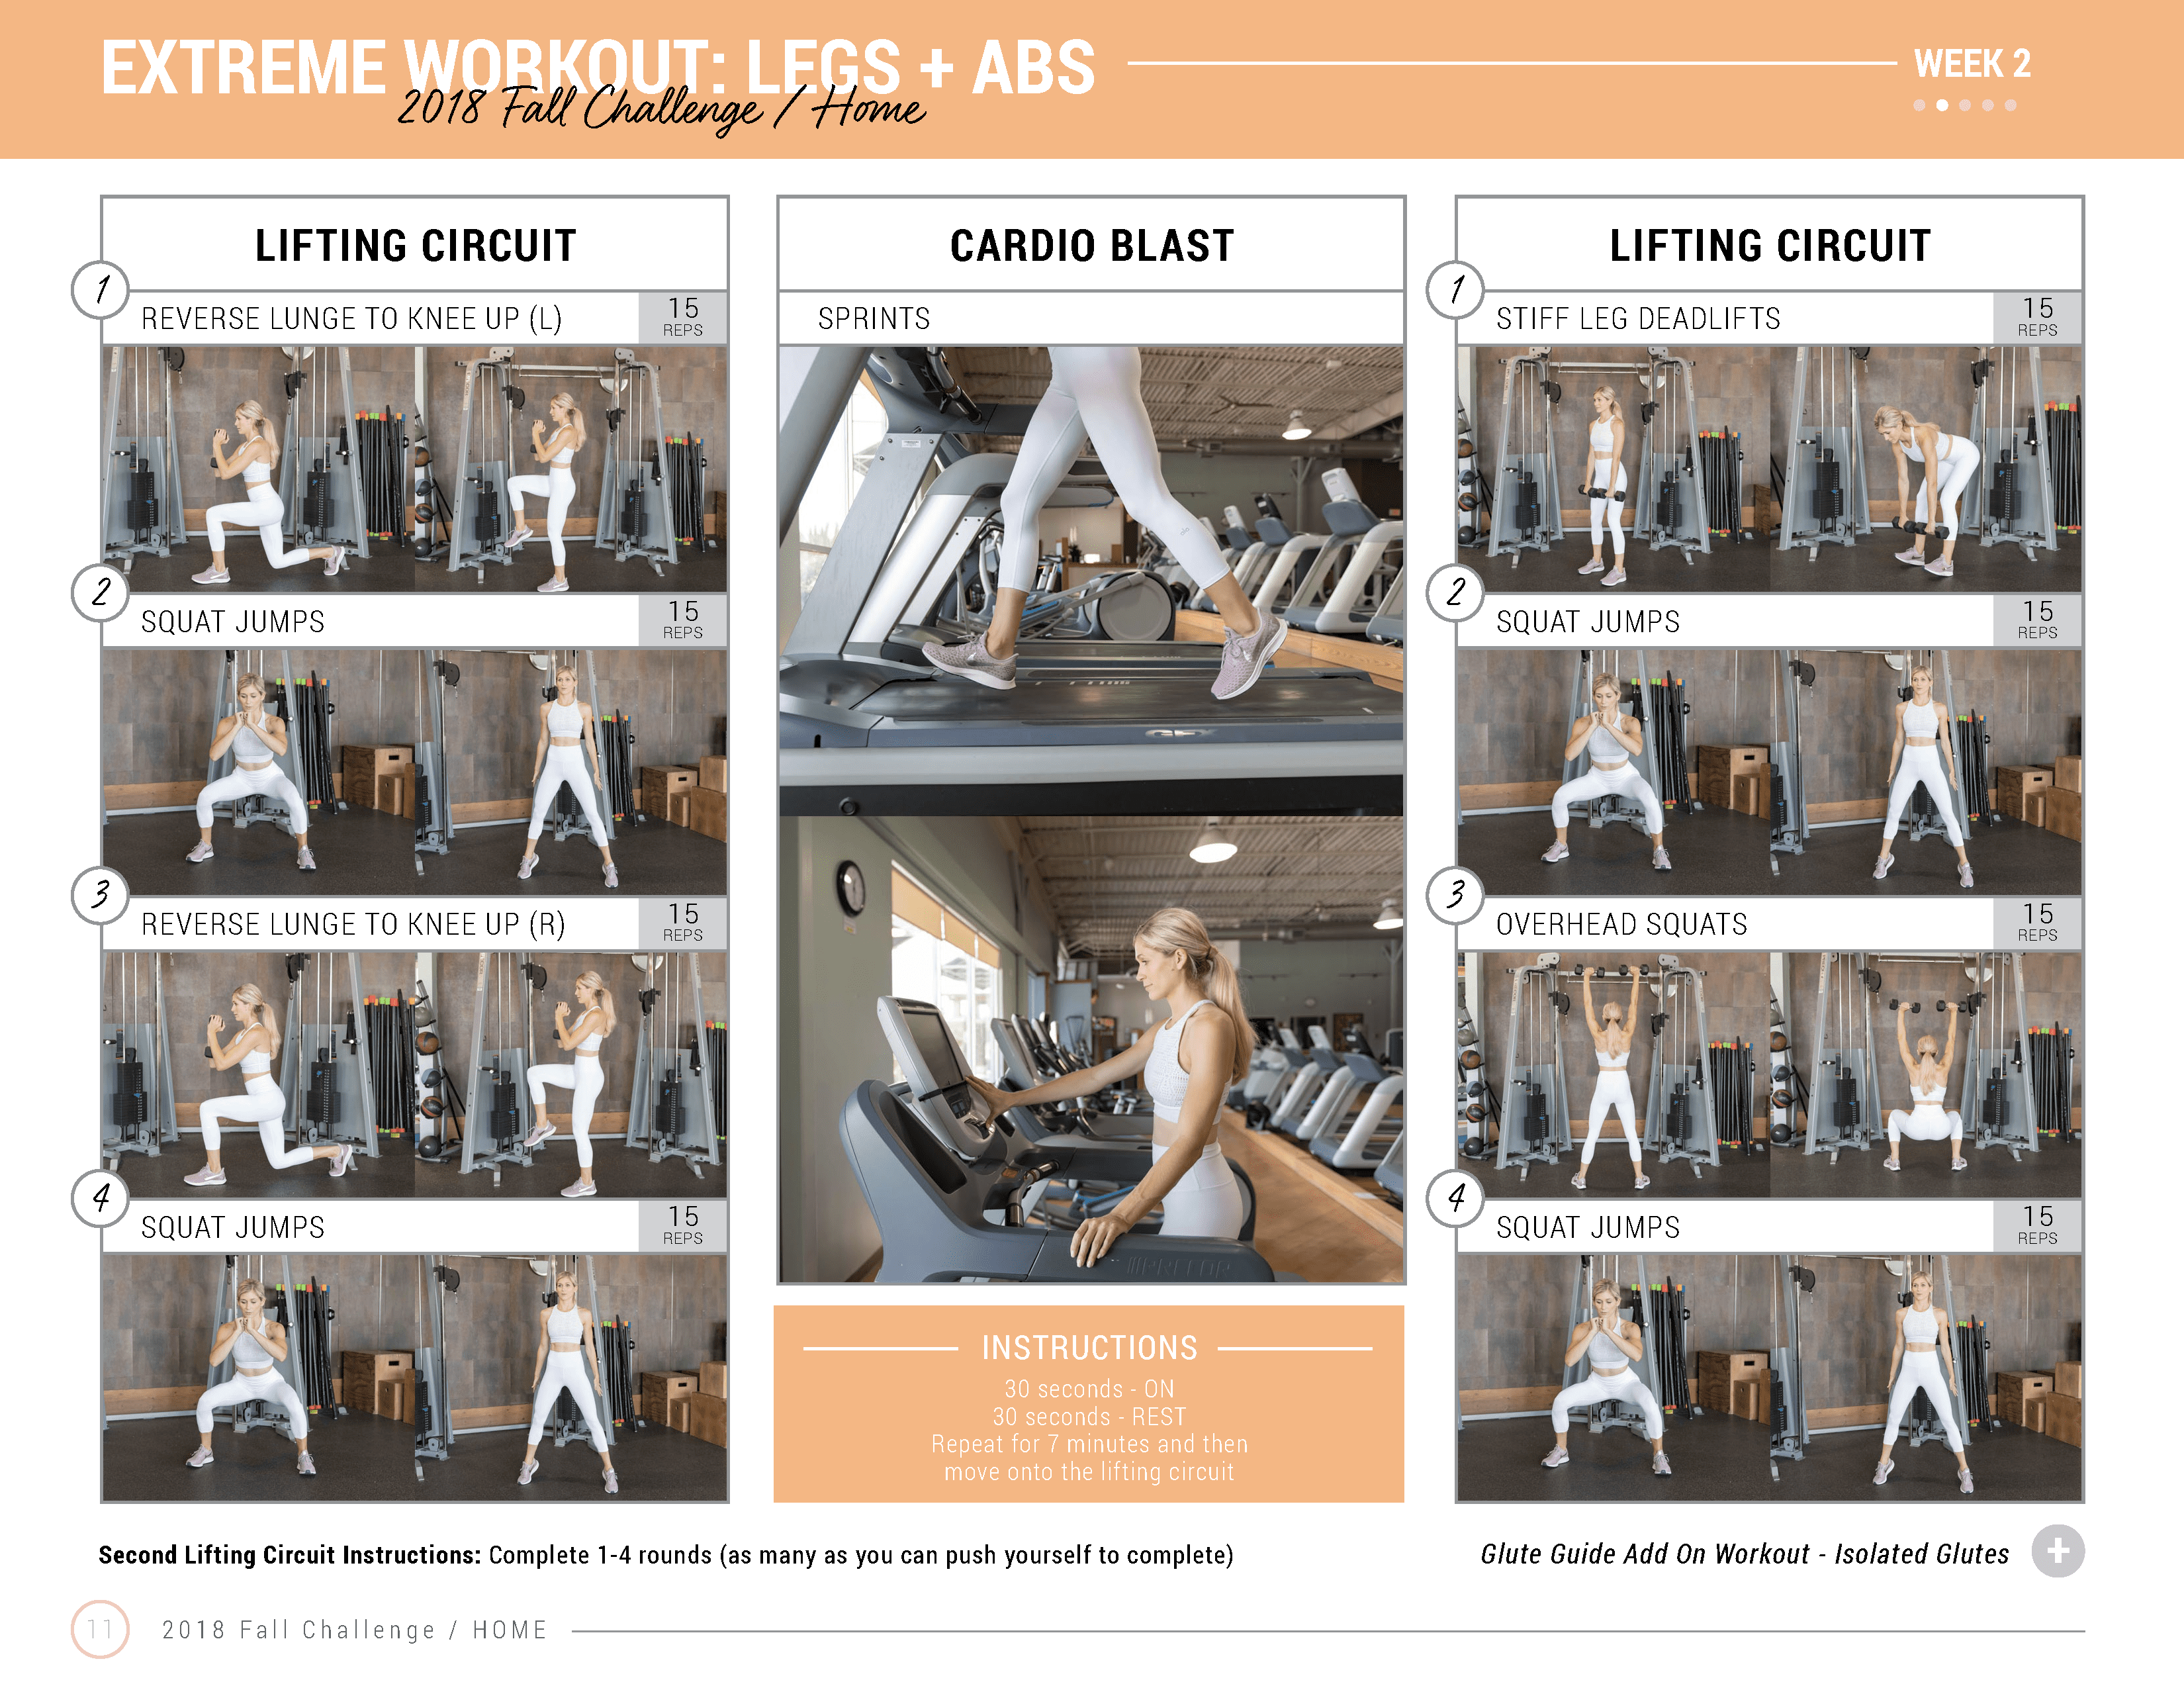 legs and abs weight training workout for home